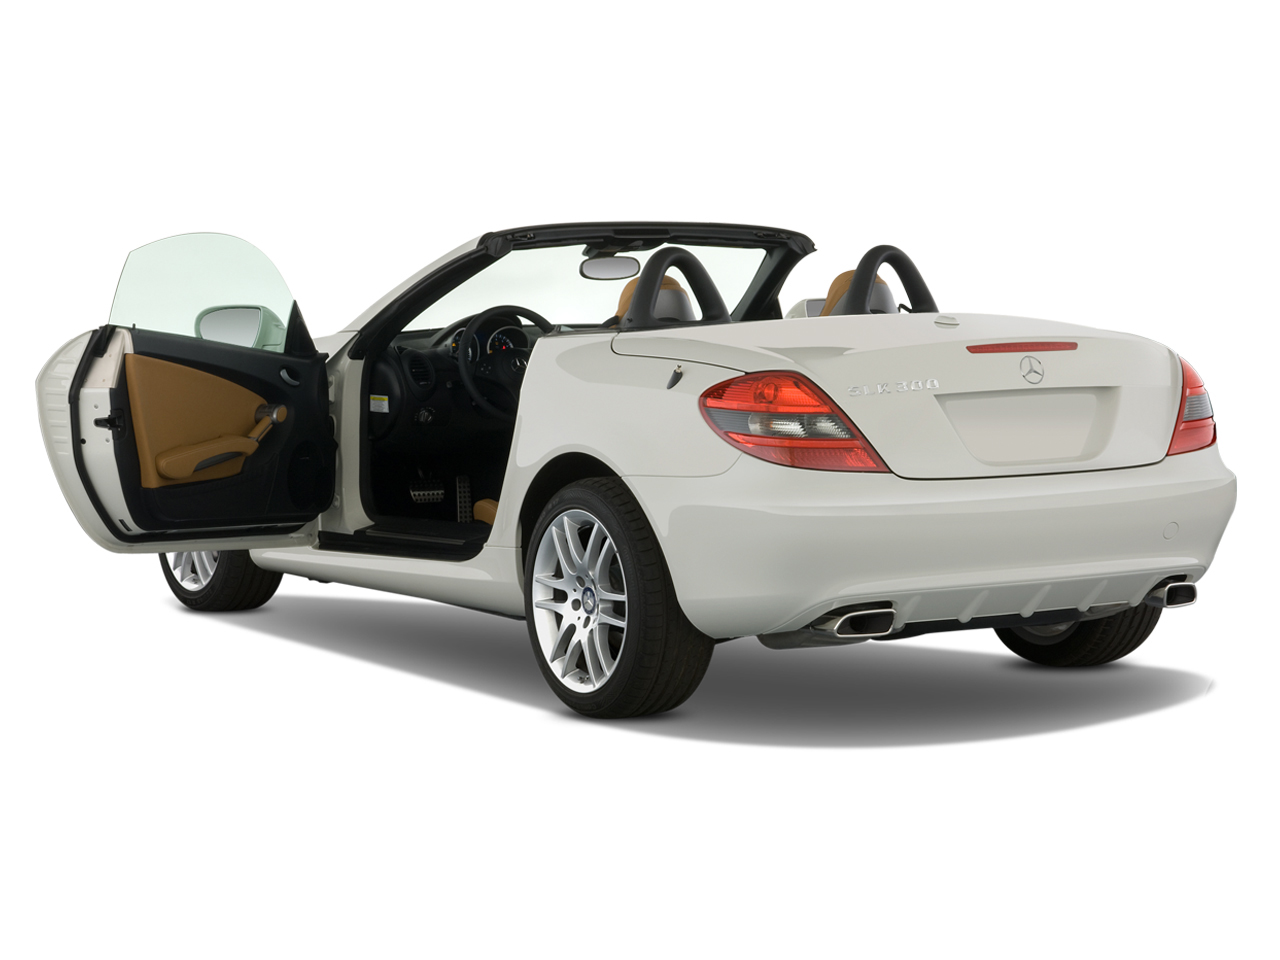 2009 mercedes benz slk 55 amg mercedes benz luxury. Black Bedroom Furniture Sets. Home Design Ideas